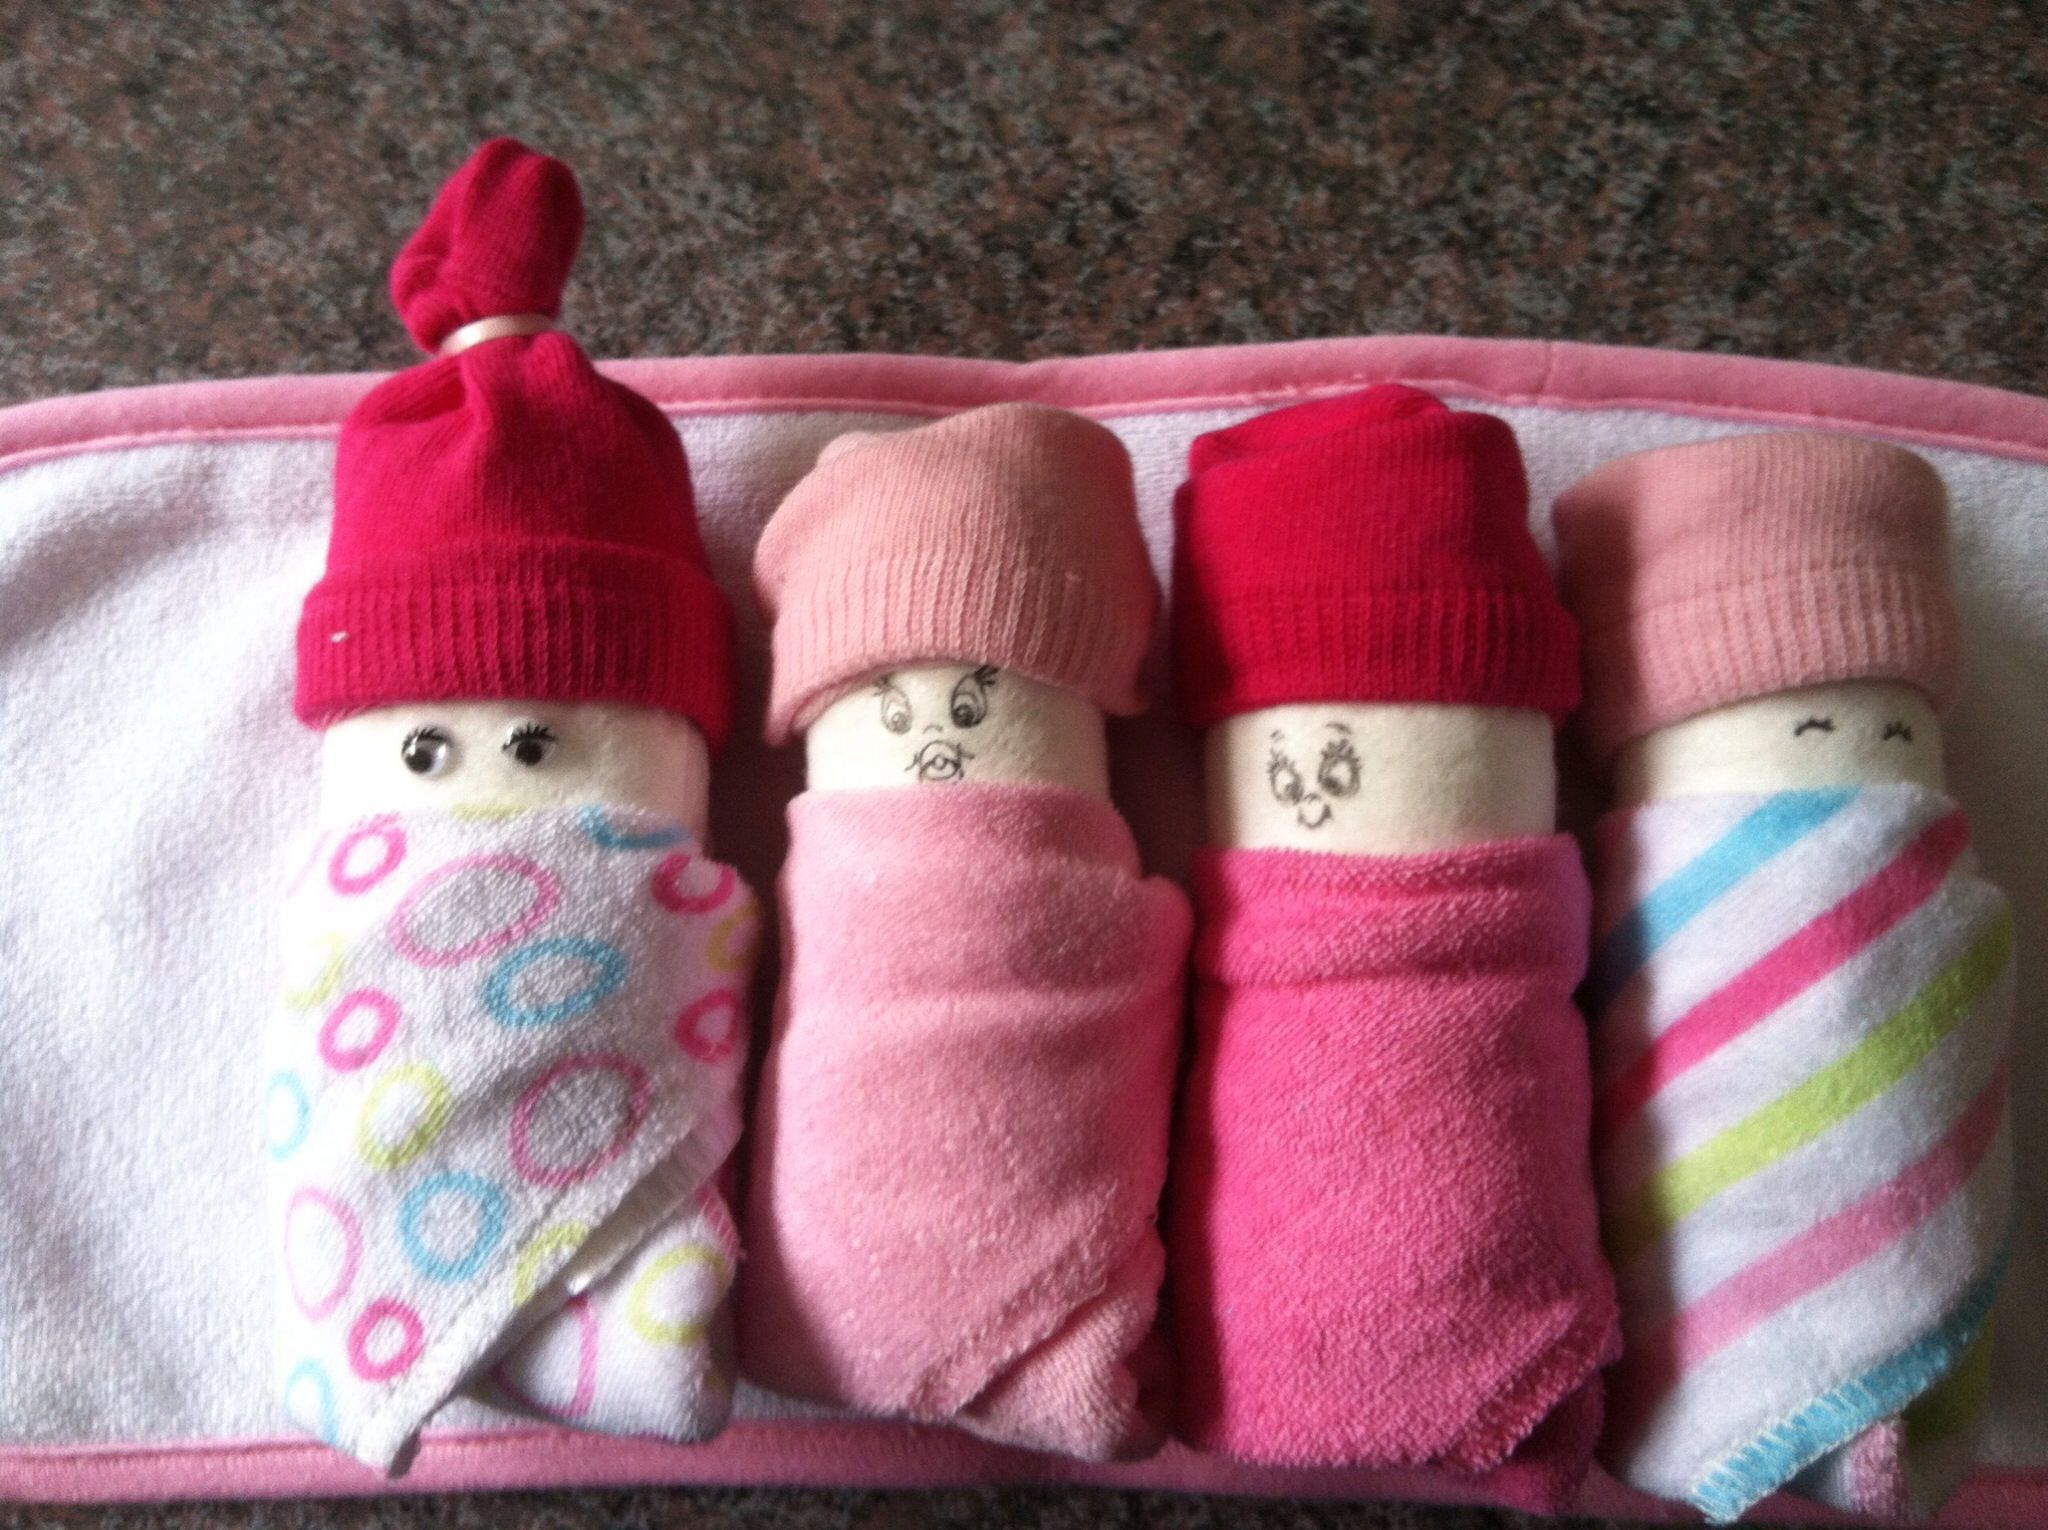 Baby -  diapers and socks